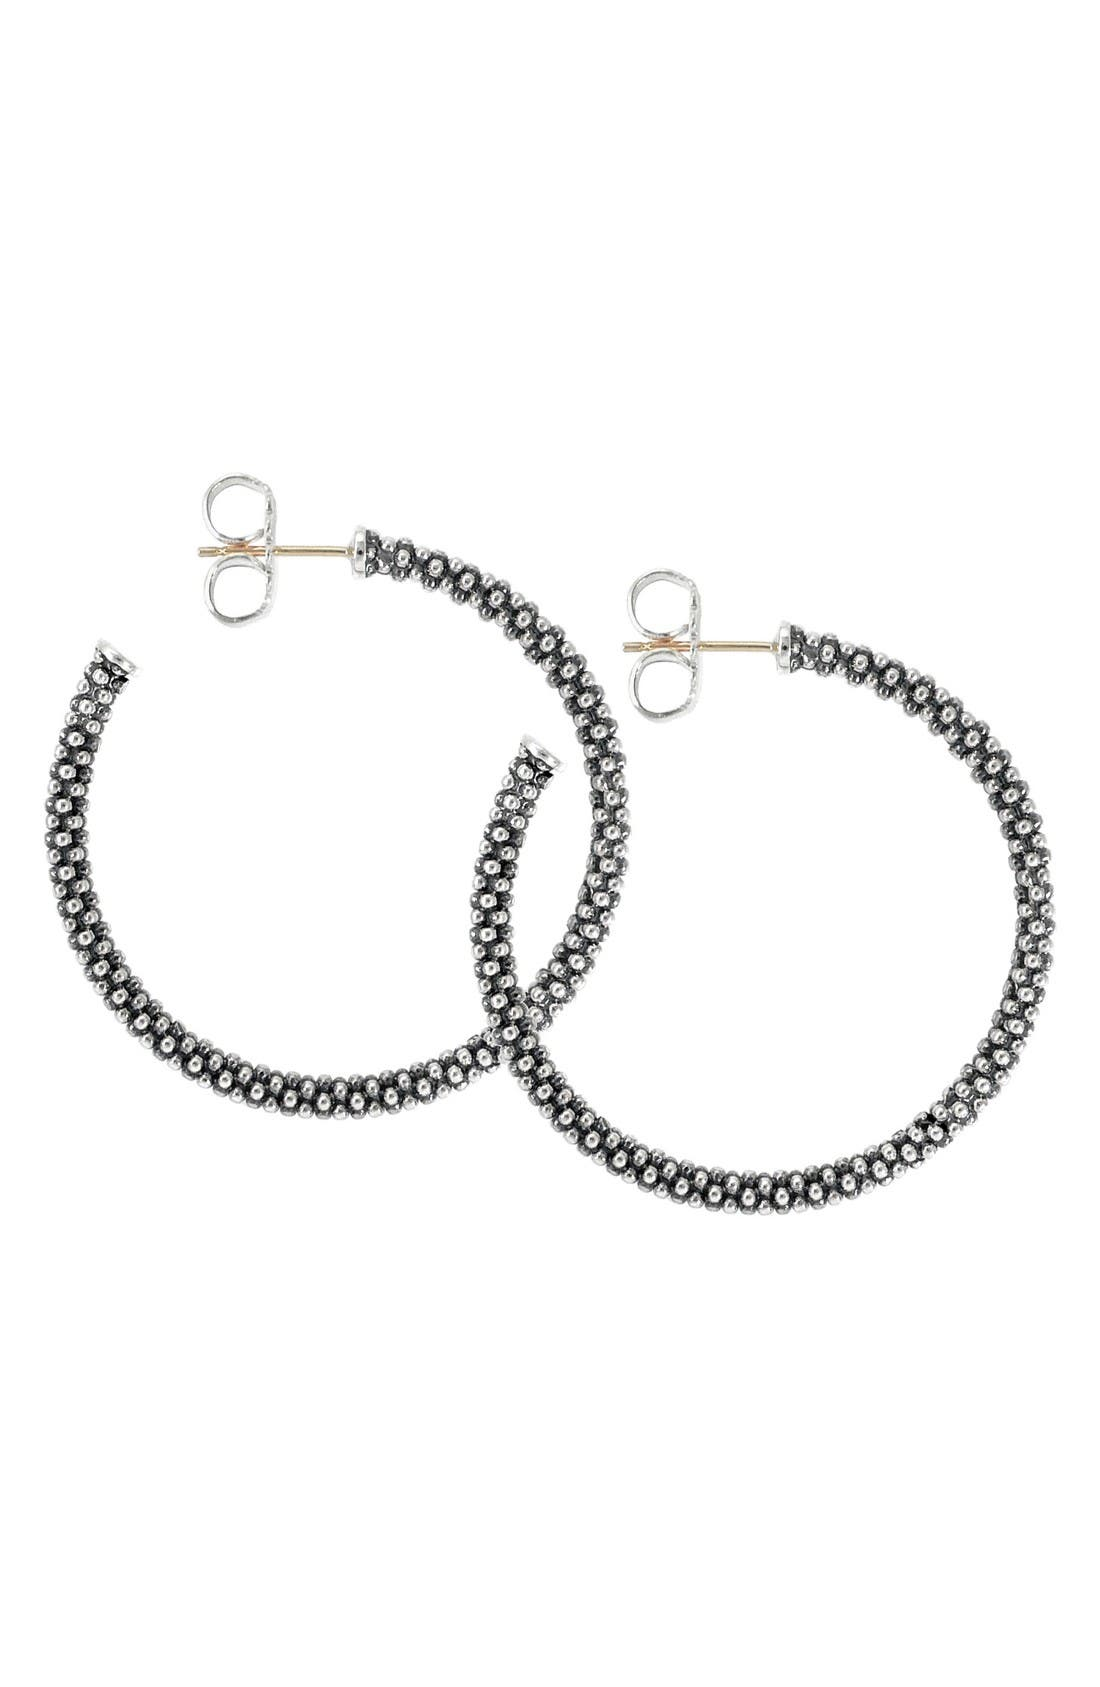 Main Image - LAGOS Medium Caviar Hoop Earrings